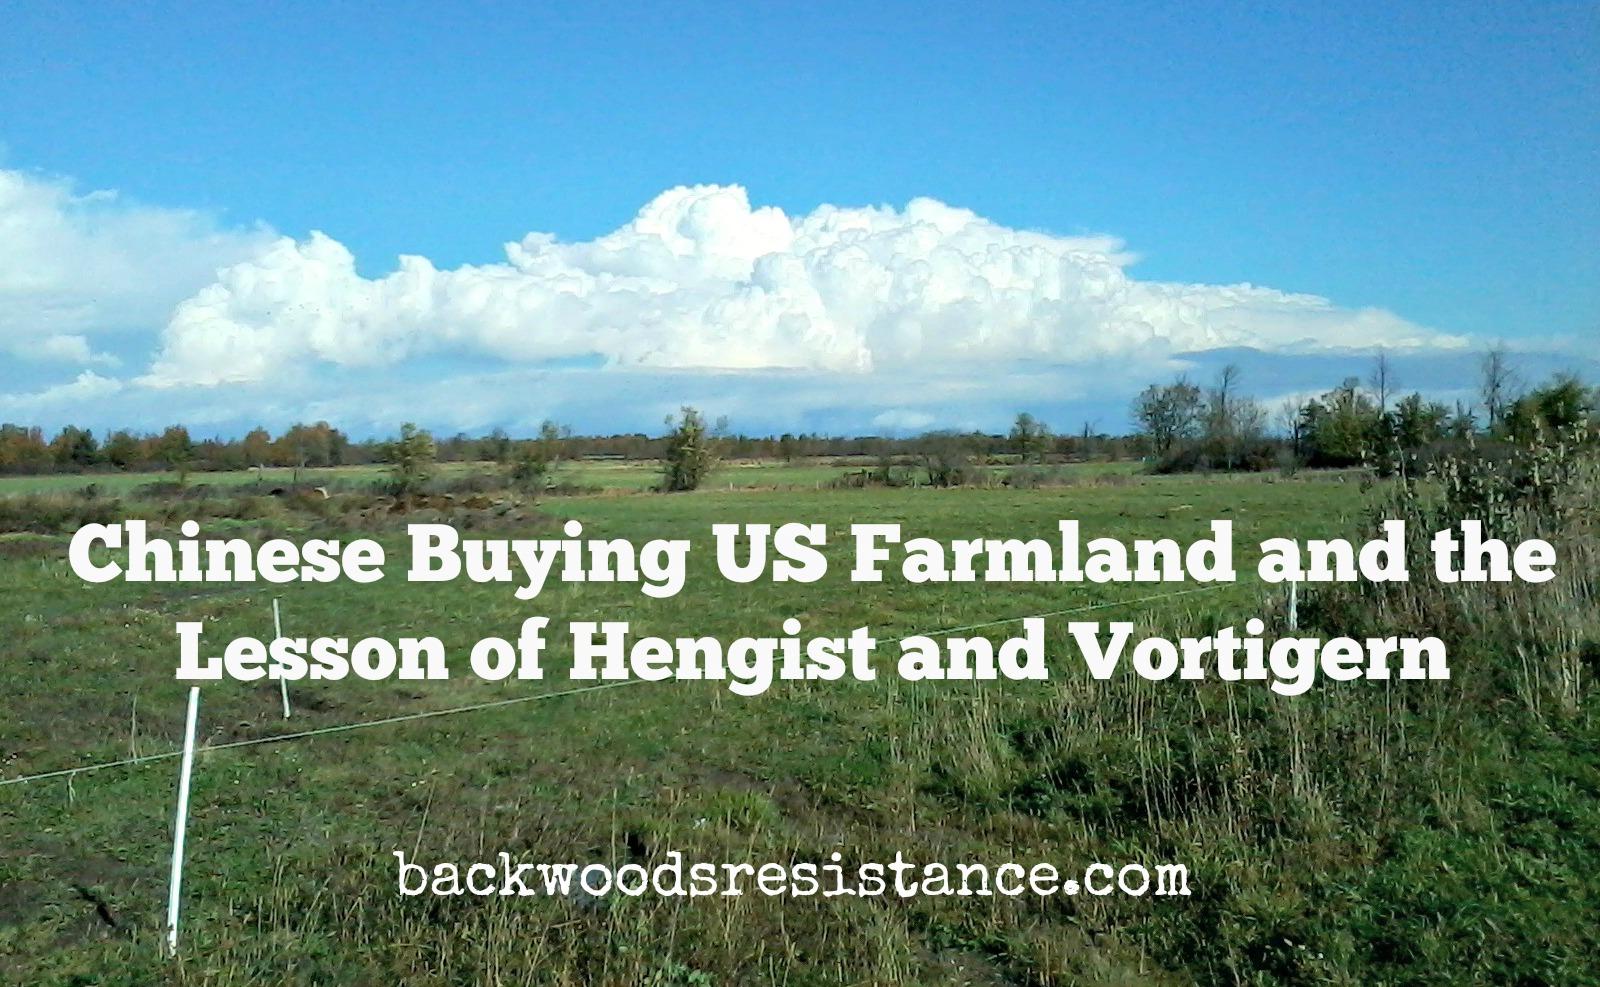 Chinese Buying US Farmland and the Lesson of Hengist and Vortigern